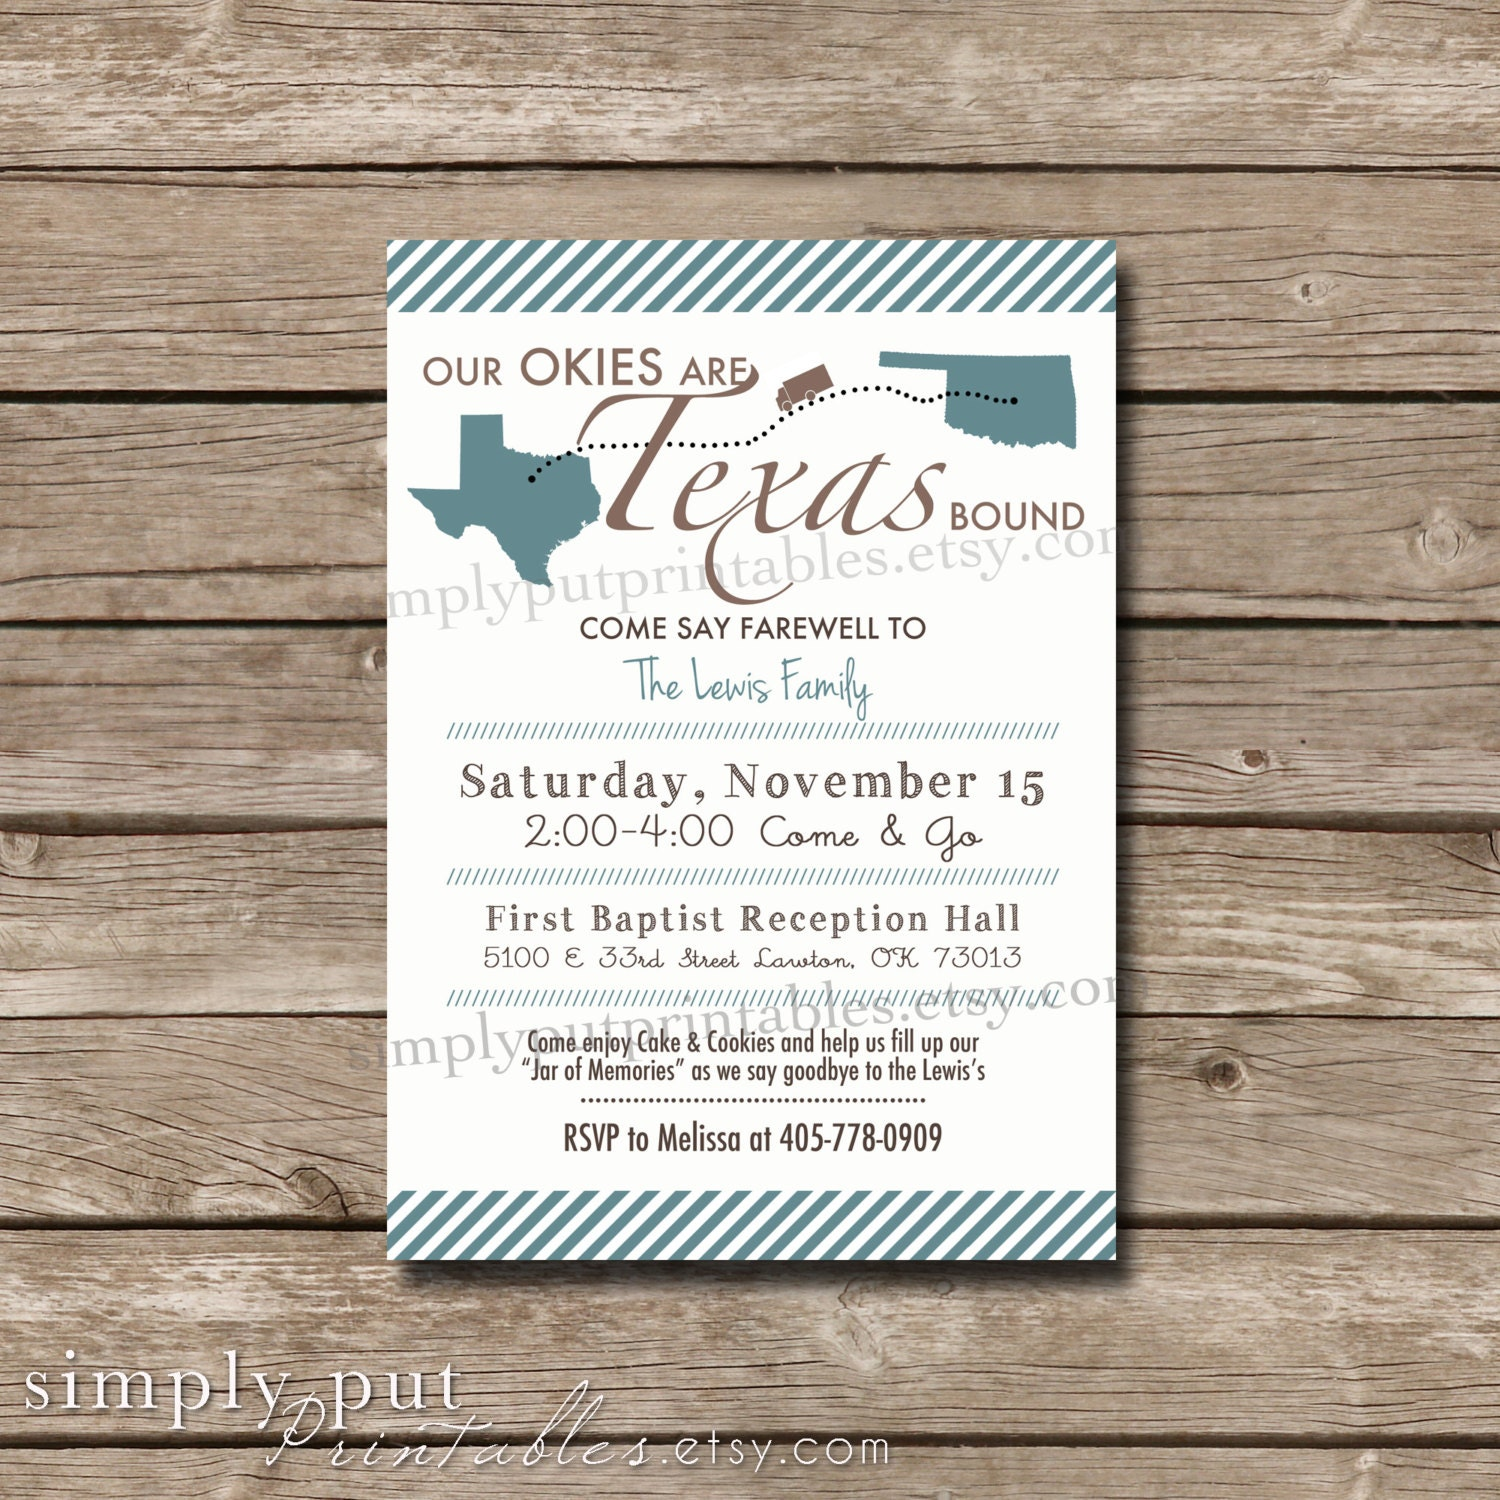 Bon voyage invite – Invitations for Going Away Party